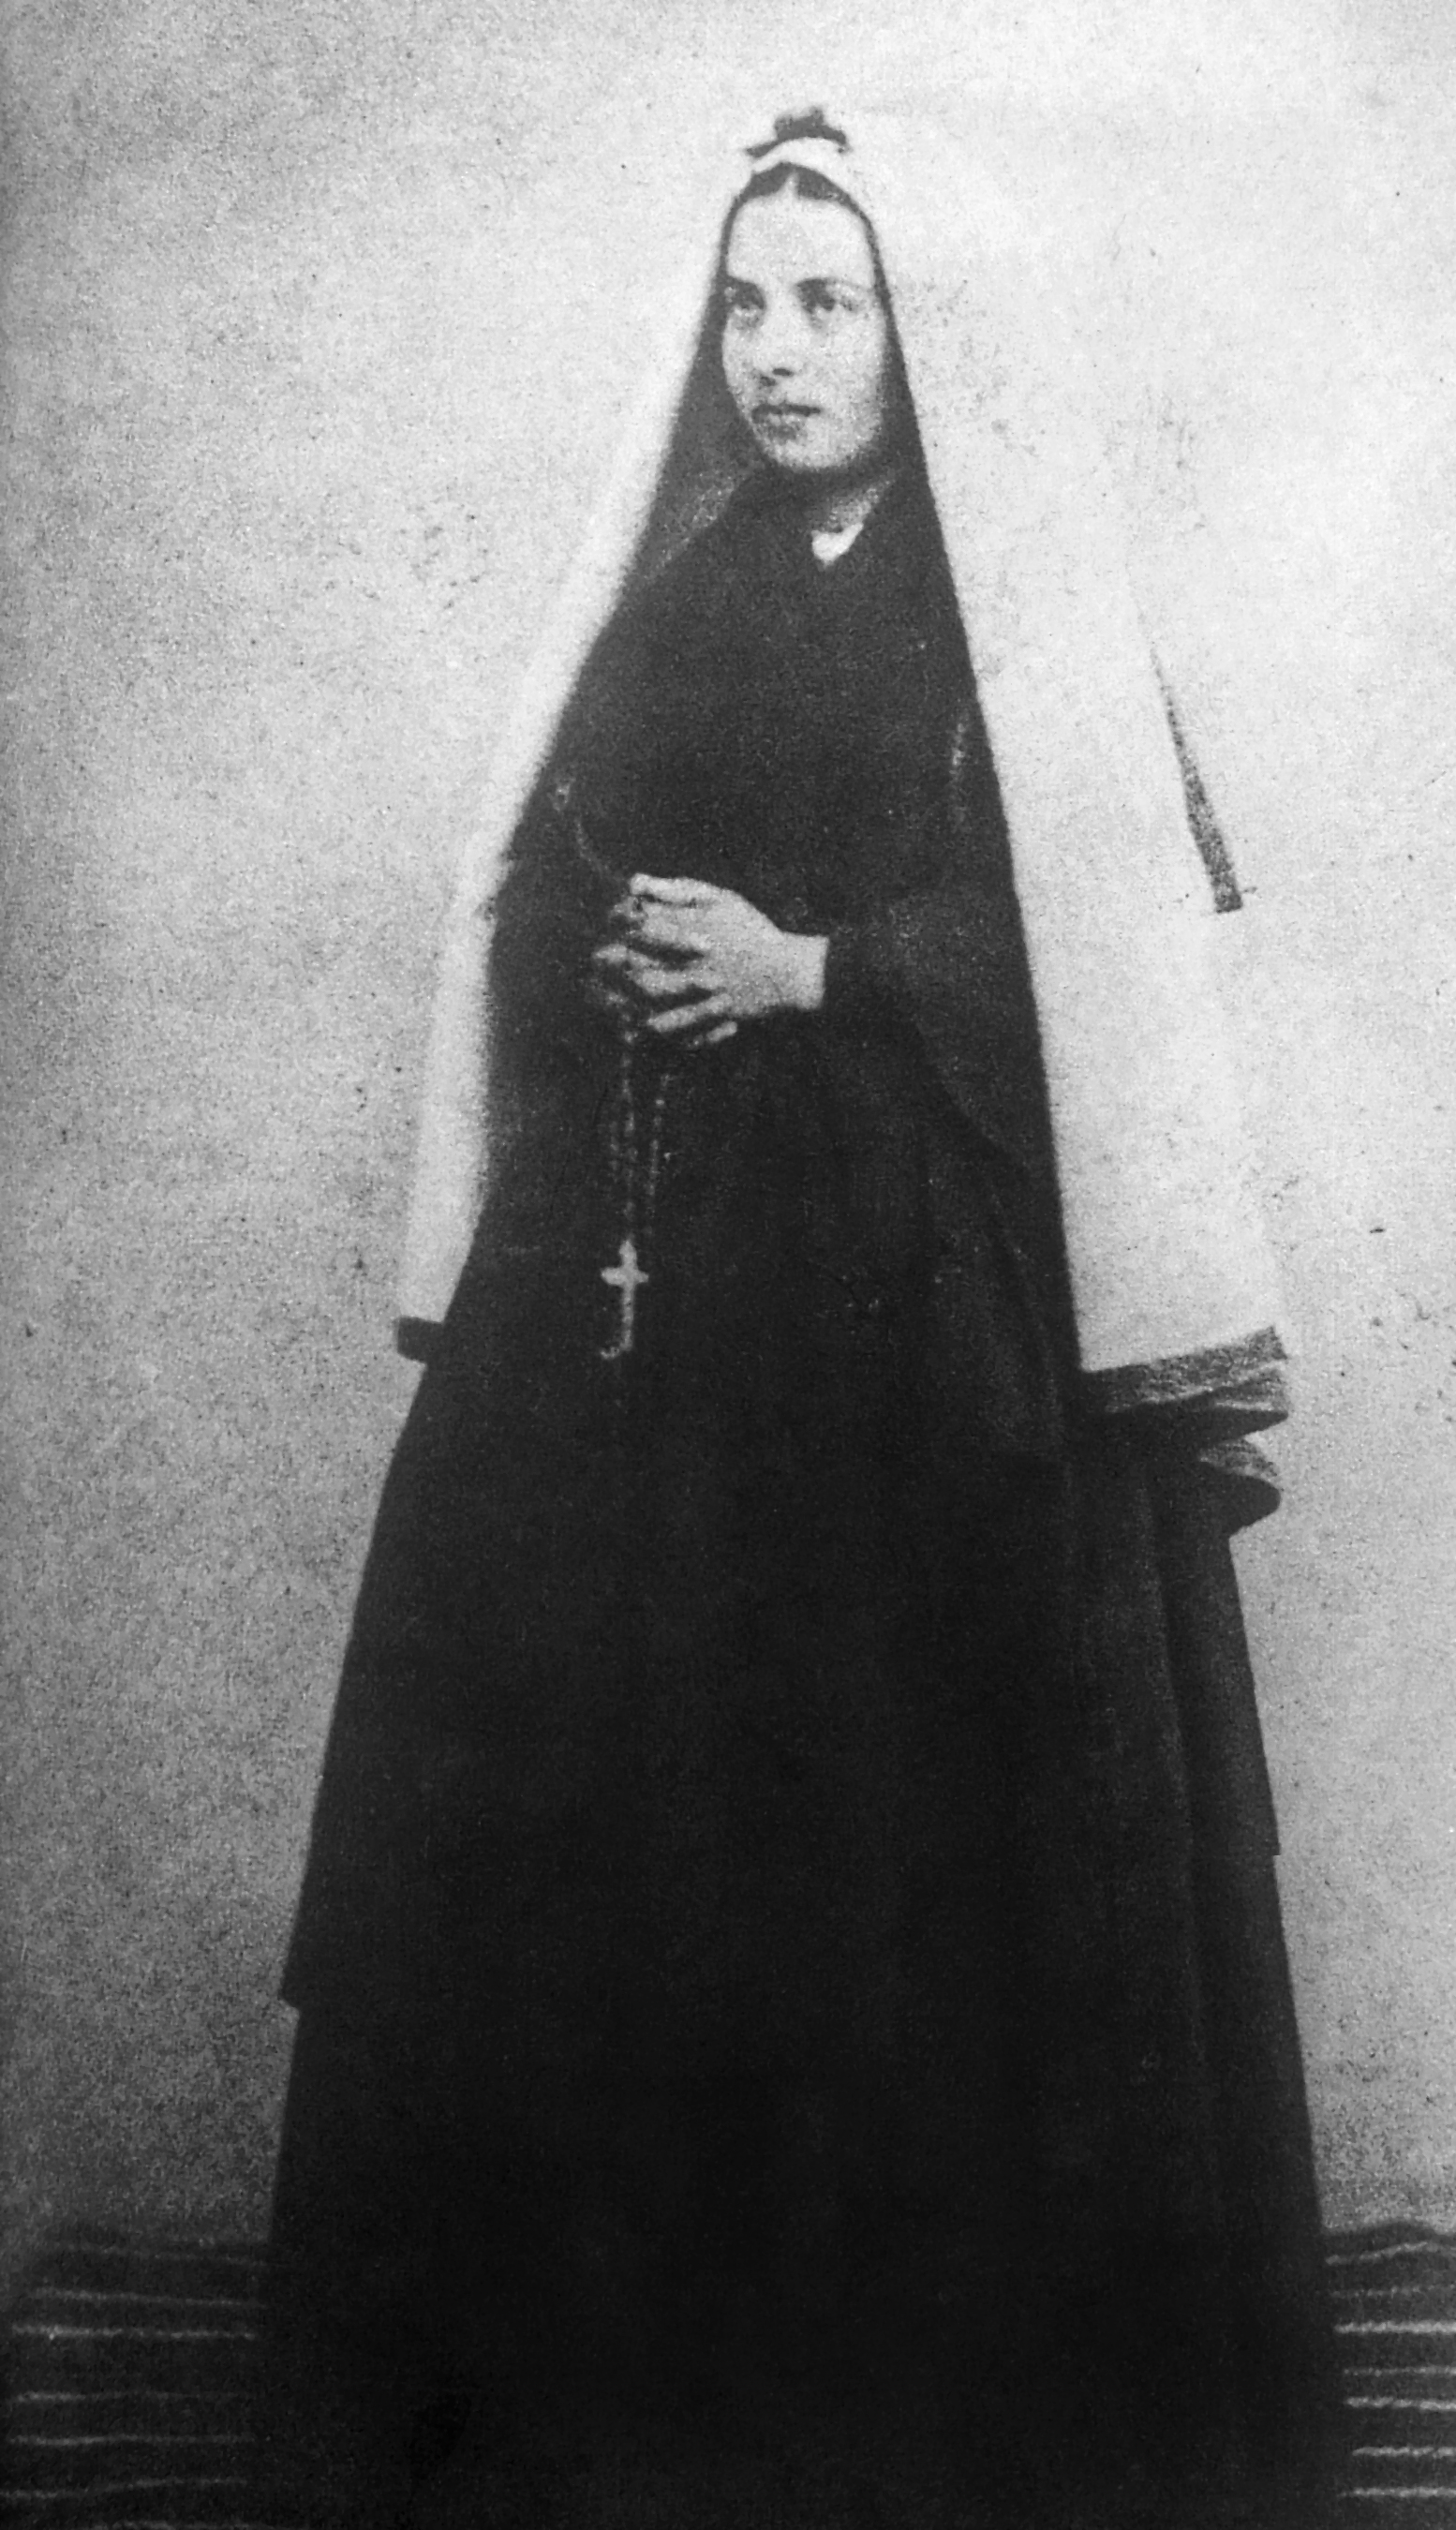 biography of saint bernadette soubirous Bernadette soubirous's wiki: bernadette soubirous angèle osinsky portrayed saint bernadette in the italian tv movie lourdes, 2000, by lodovico gasparini.